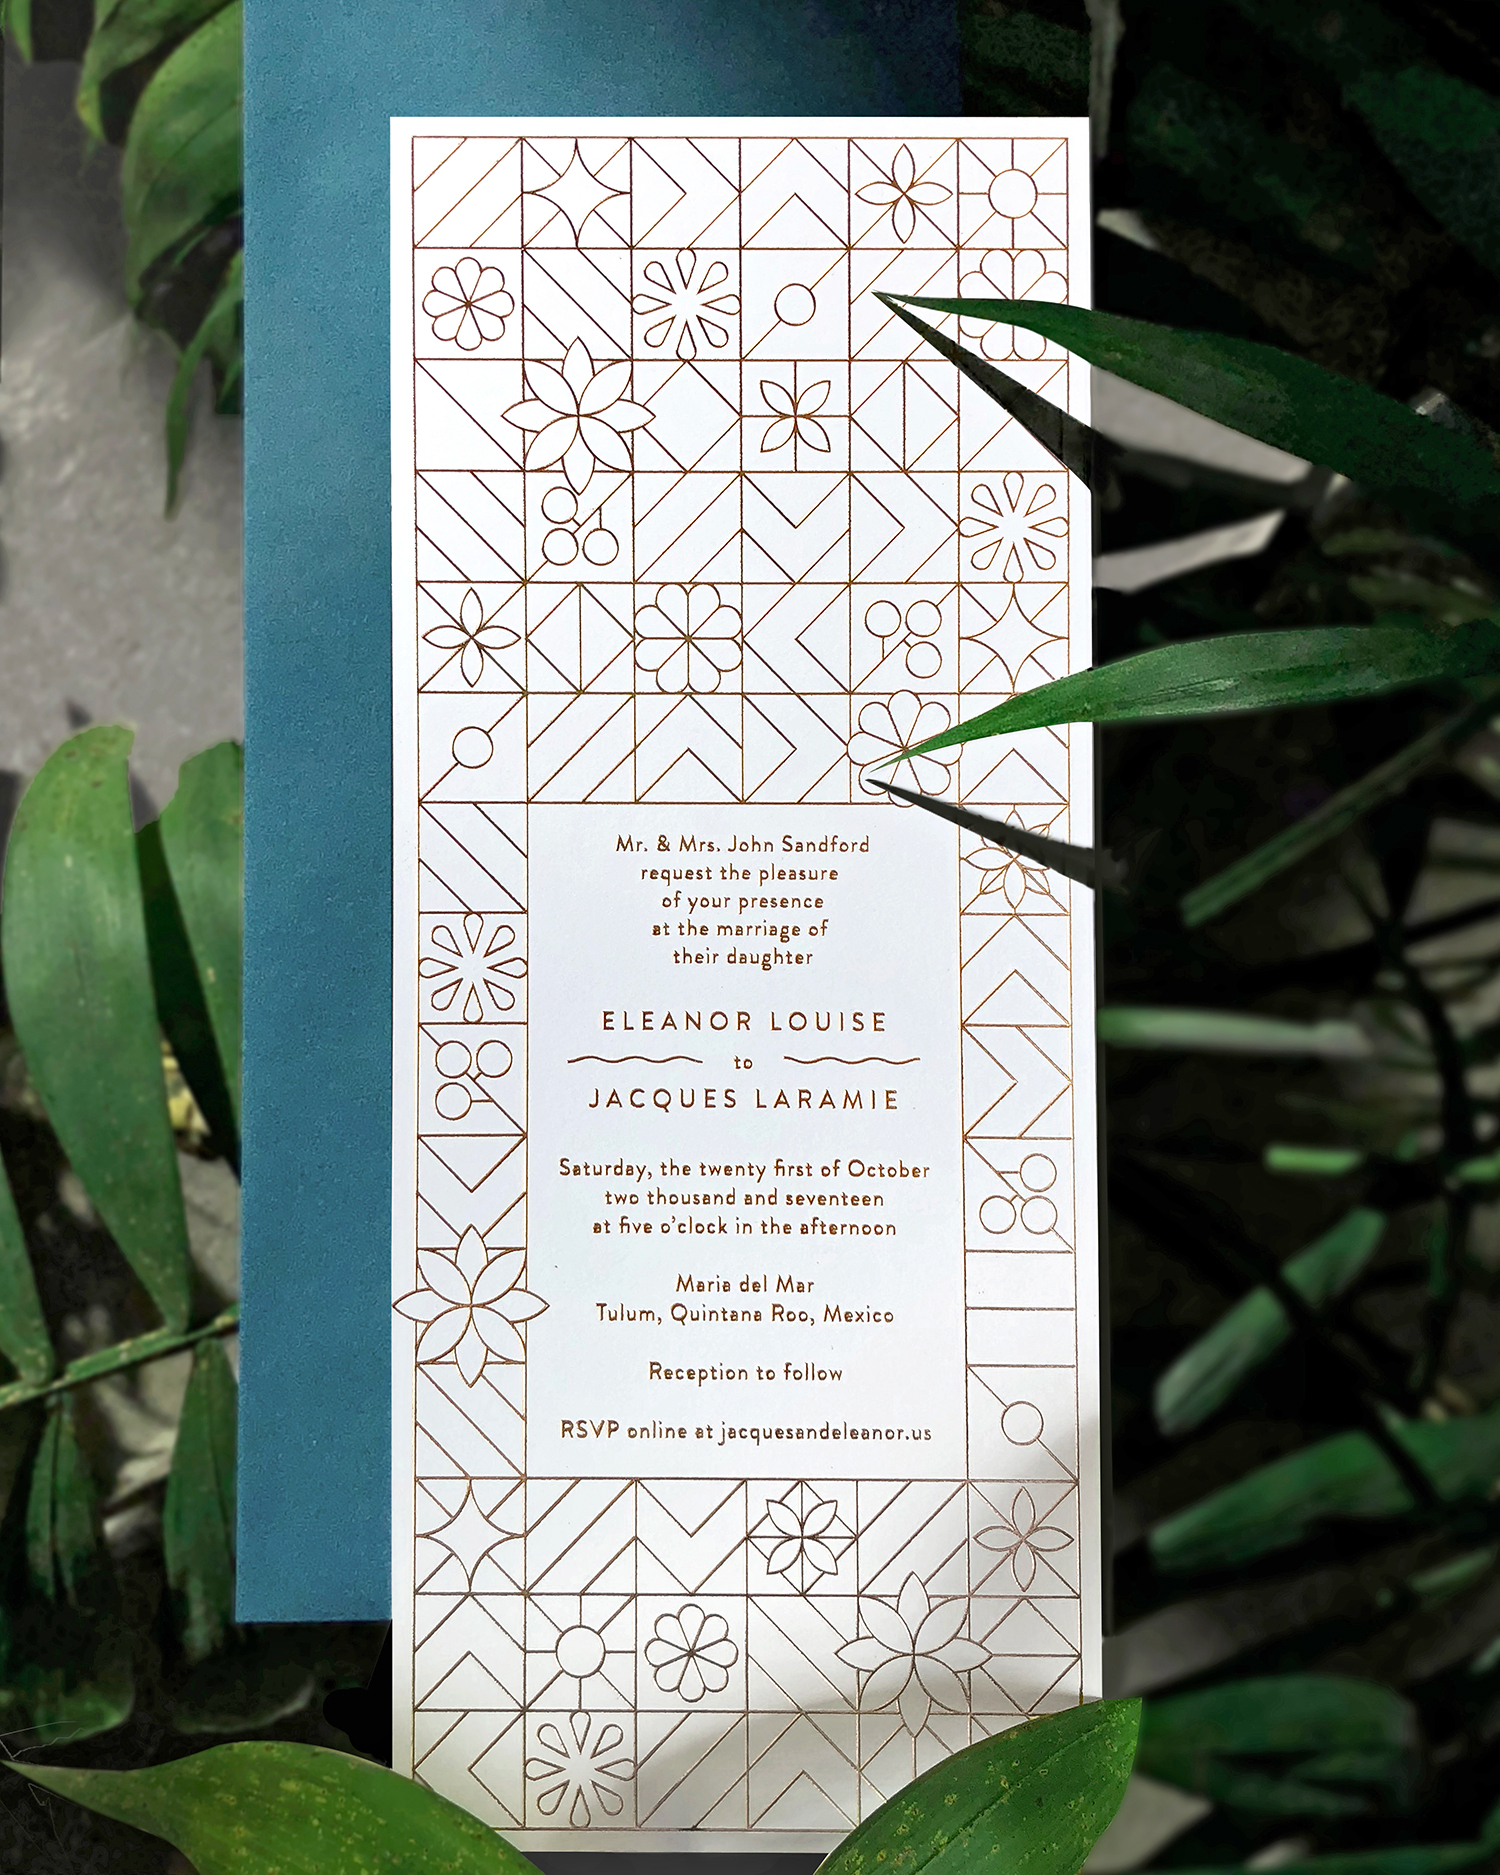 Tile-inspired Rohner Press invitations (mailed in blue-green envelopes) introduced this Tulum beach wedding.